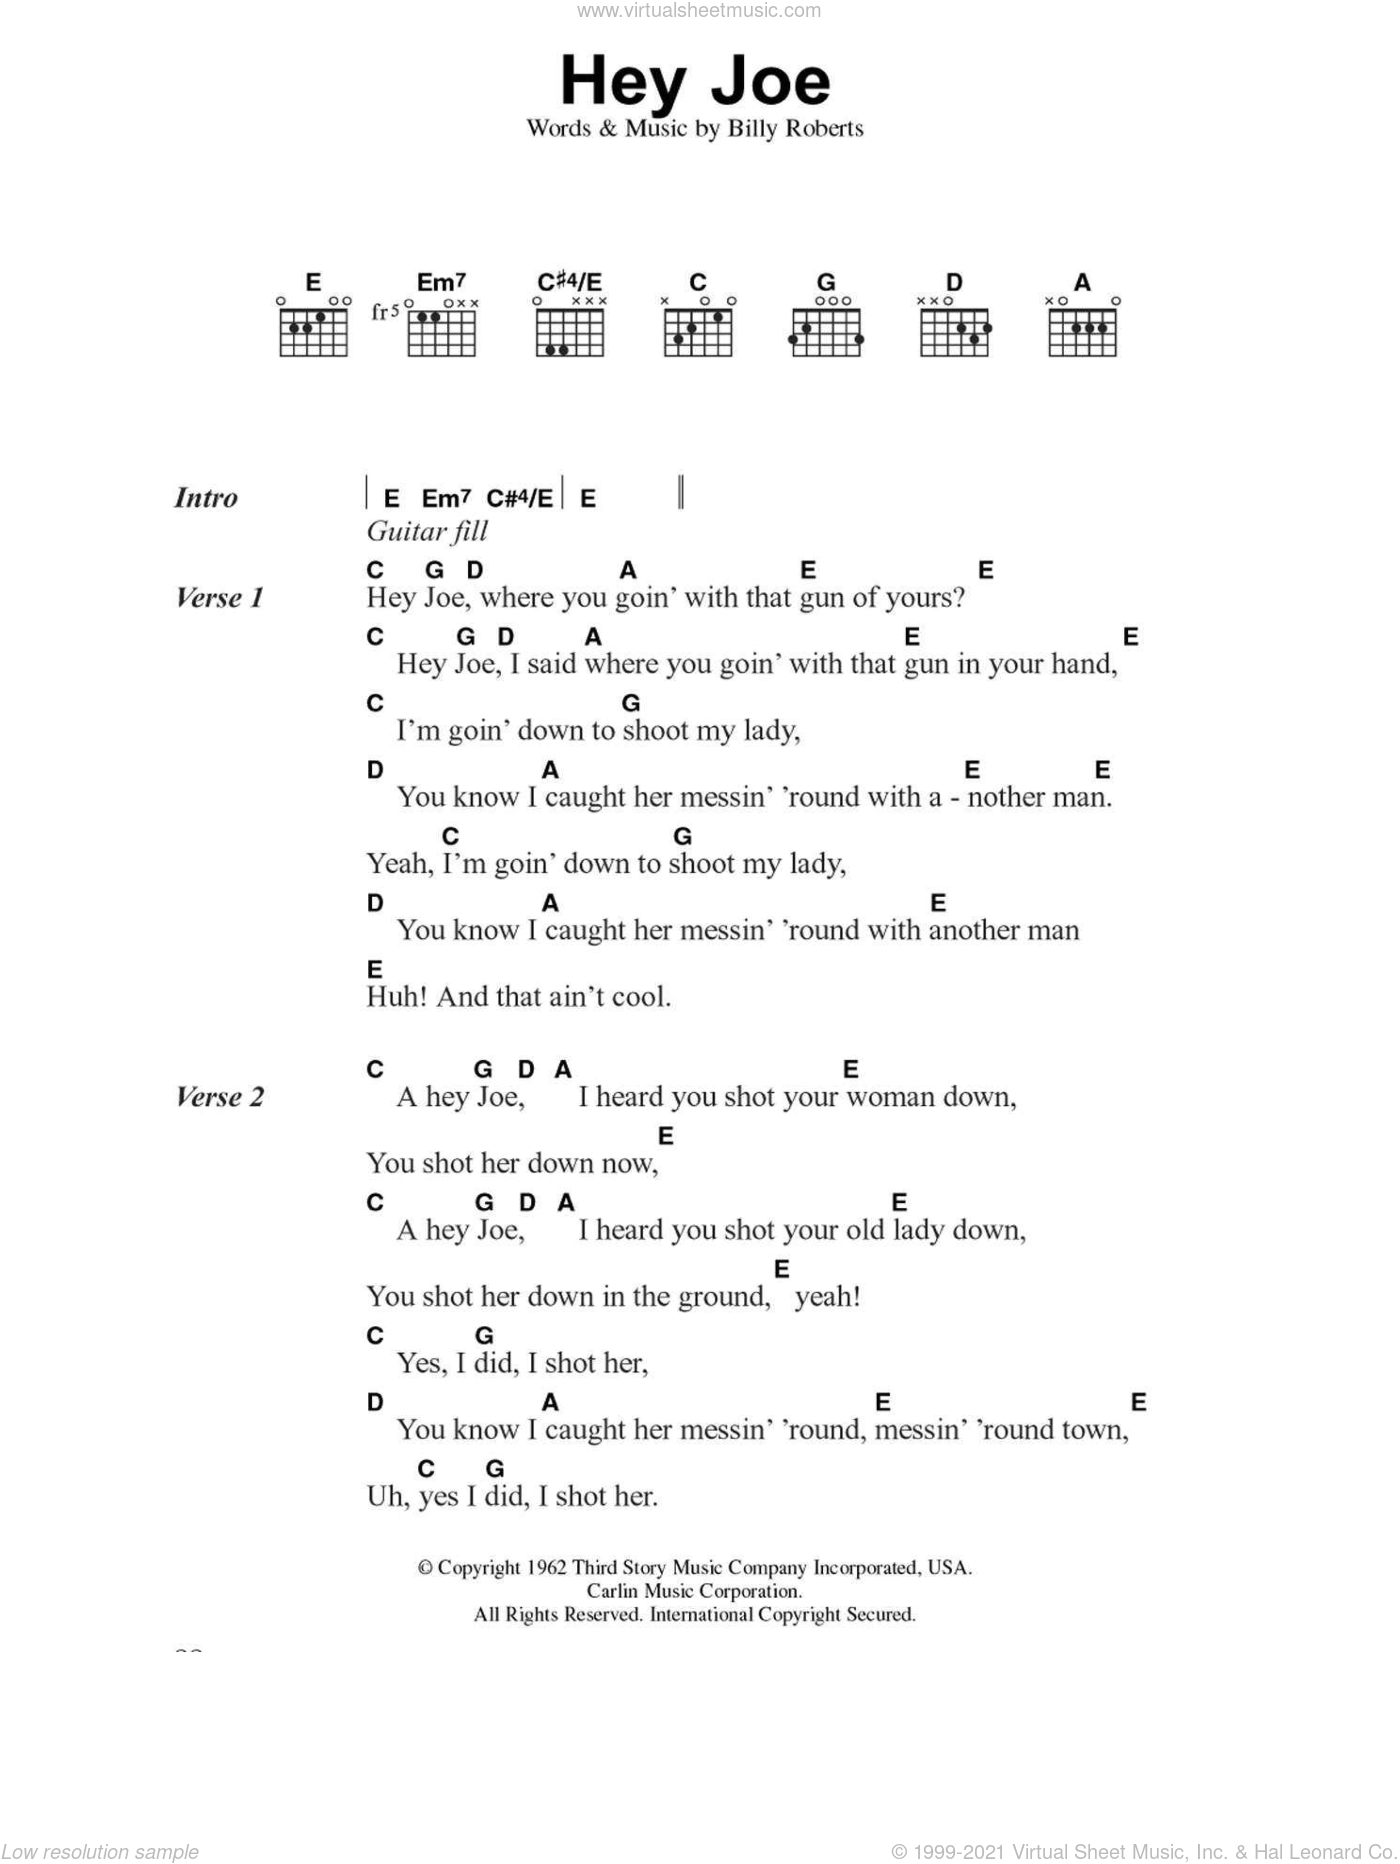 Hey Joe sheet music for guitar (chords, lyrics, melody) by Billy Roberts